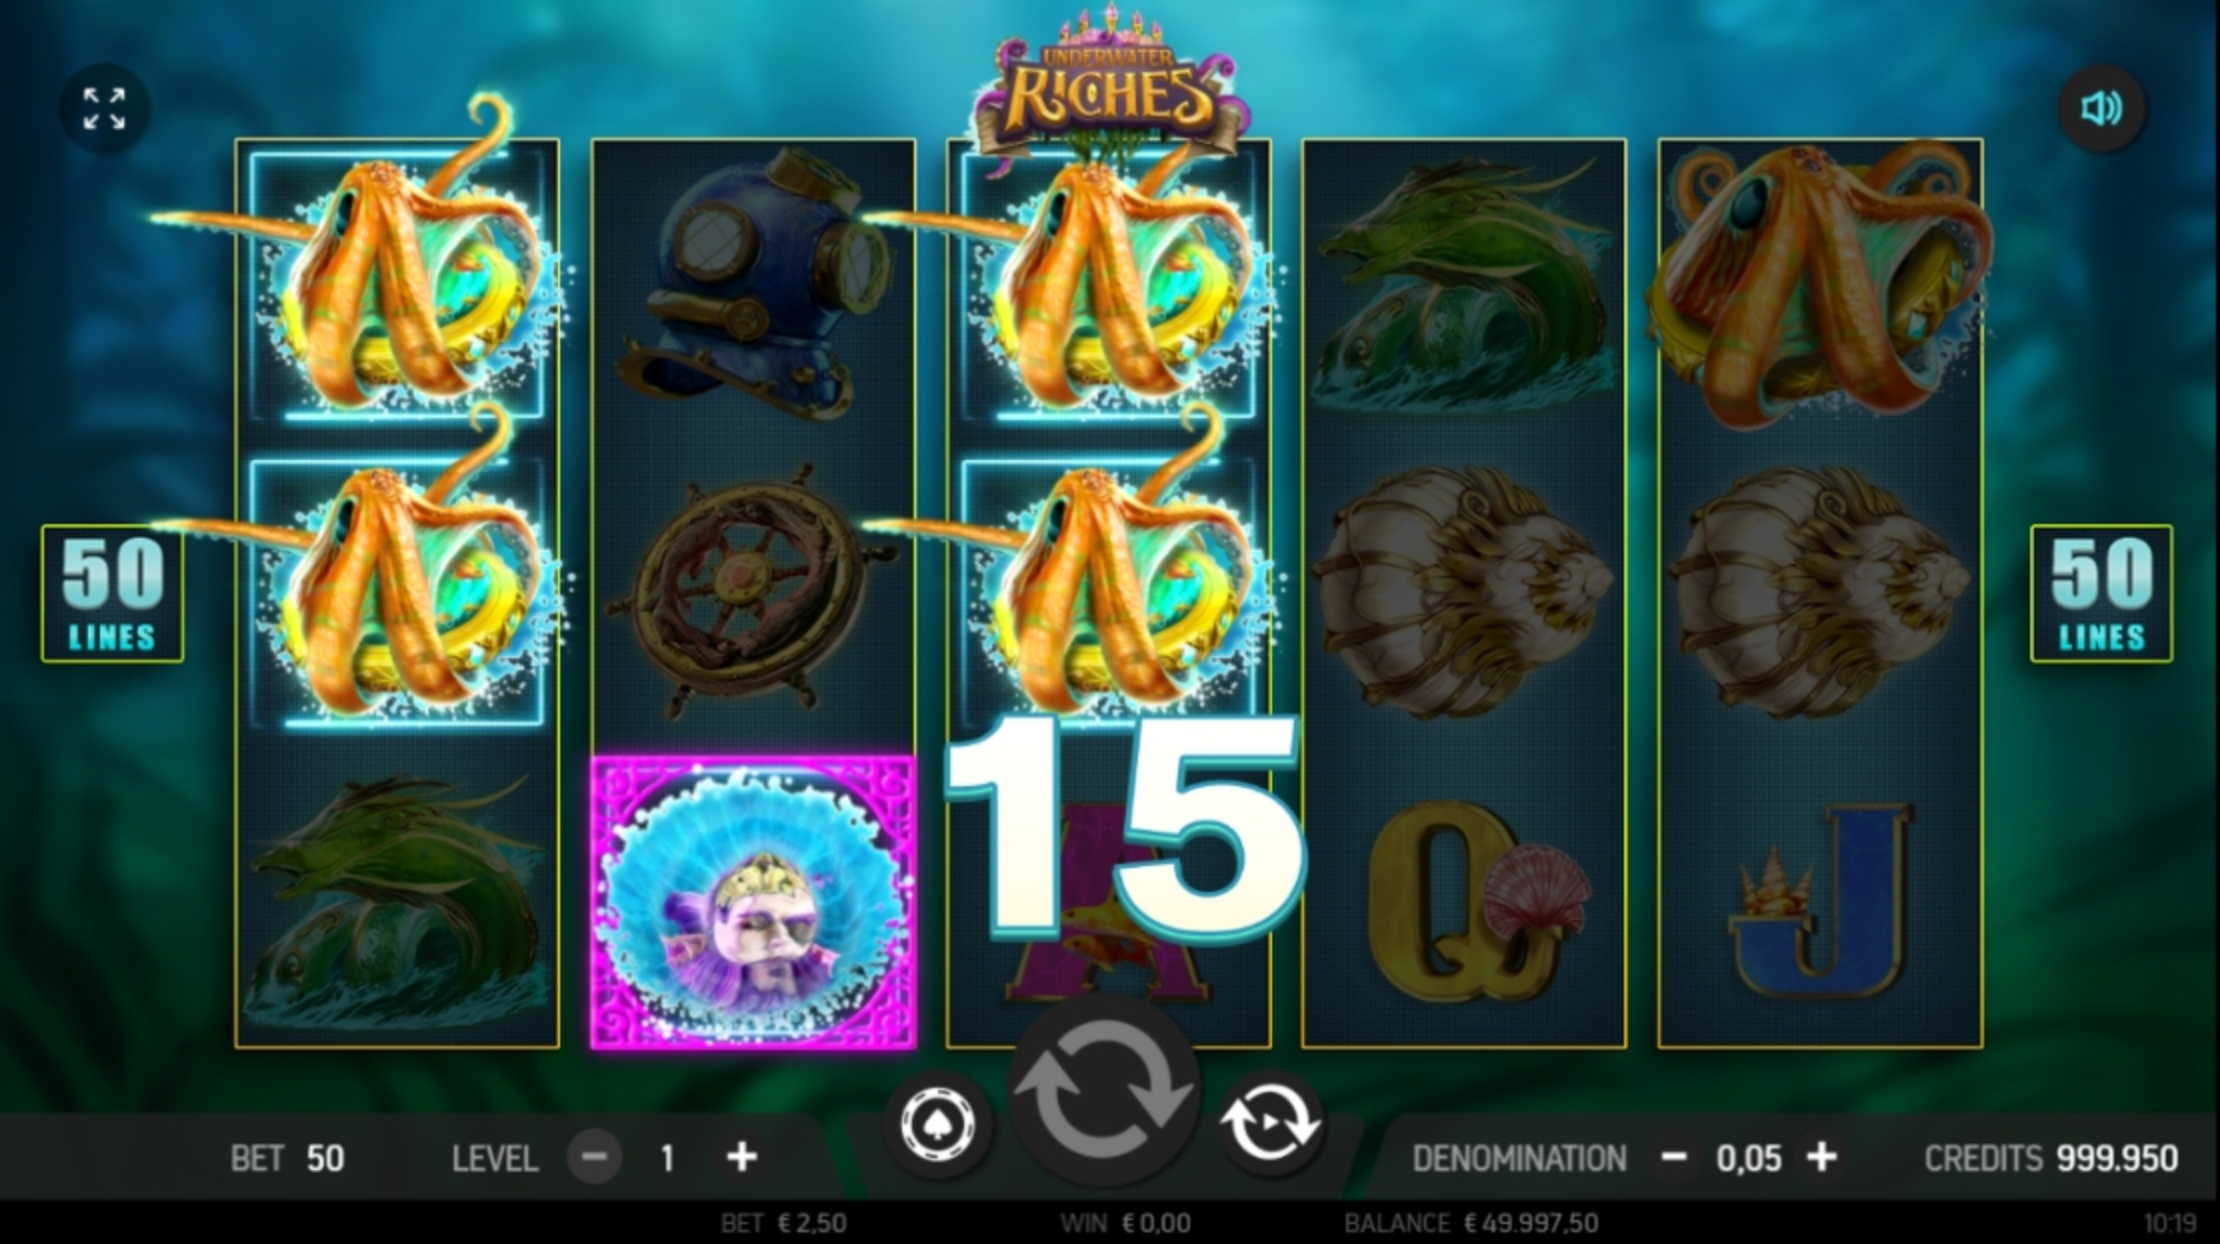 Win Money in Underwater Riches Free Slot Game by FBM